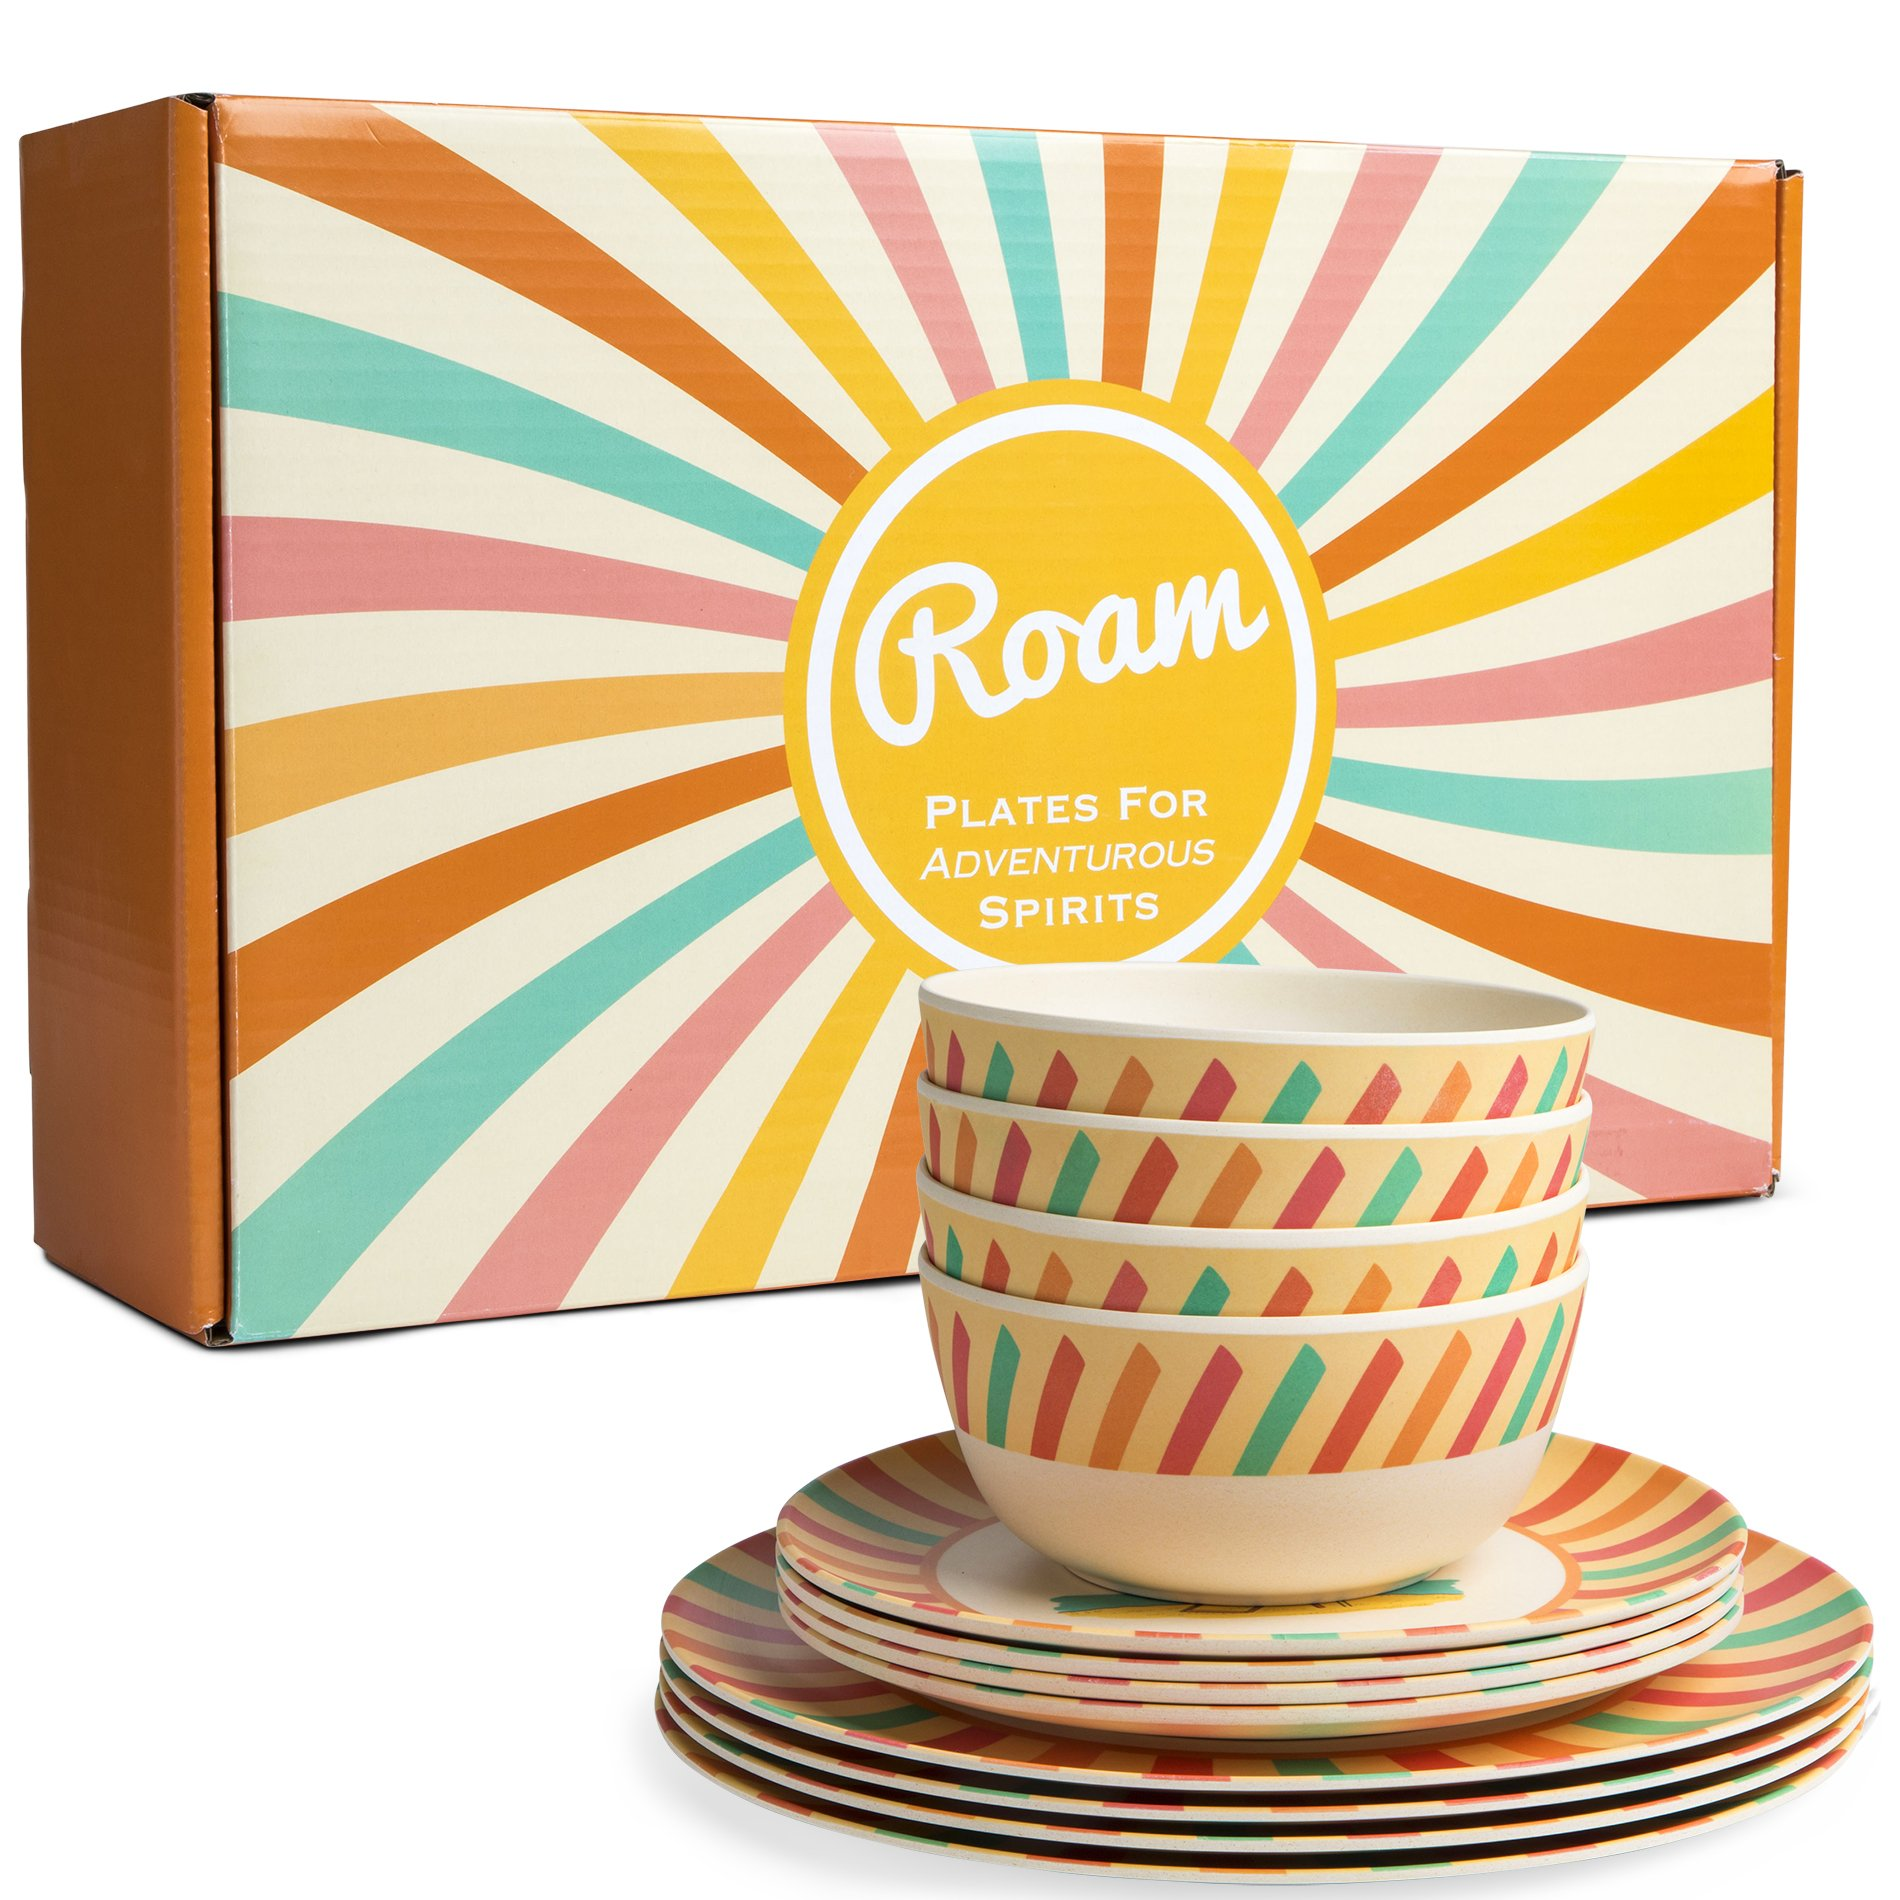 Bamboo Dinnerware Set - Camping, Kids and Family Reusable Dishes - 4 Small Plates, 4 Bowls, 4 Large Plates - Durable, Lightweight, Eco-Friendly, Non-Toxic - Casual, Retro Dishware, 12 Piece Sets by Roam (Image #2)